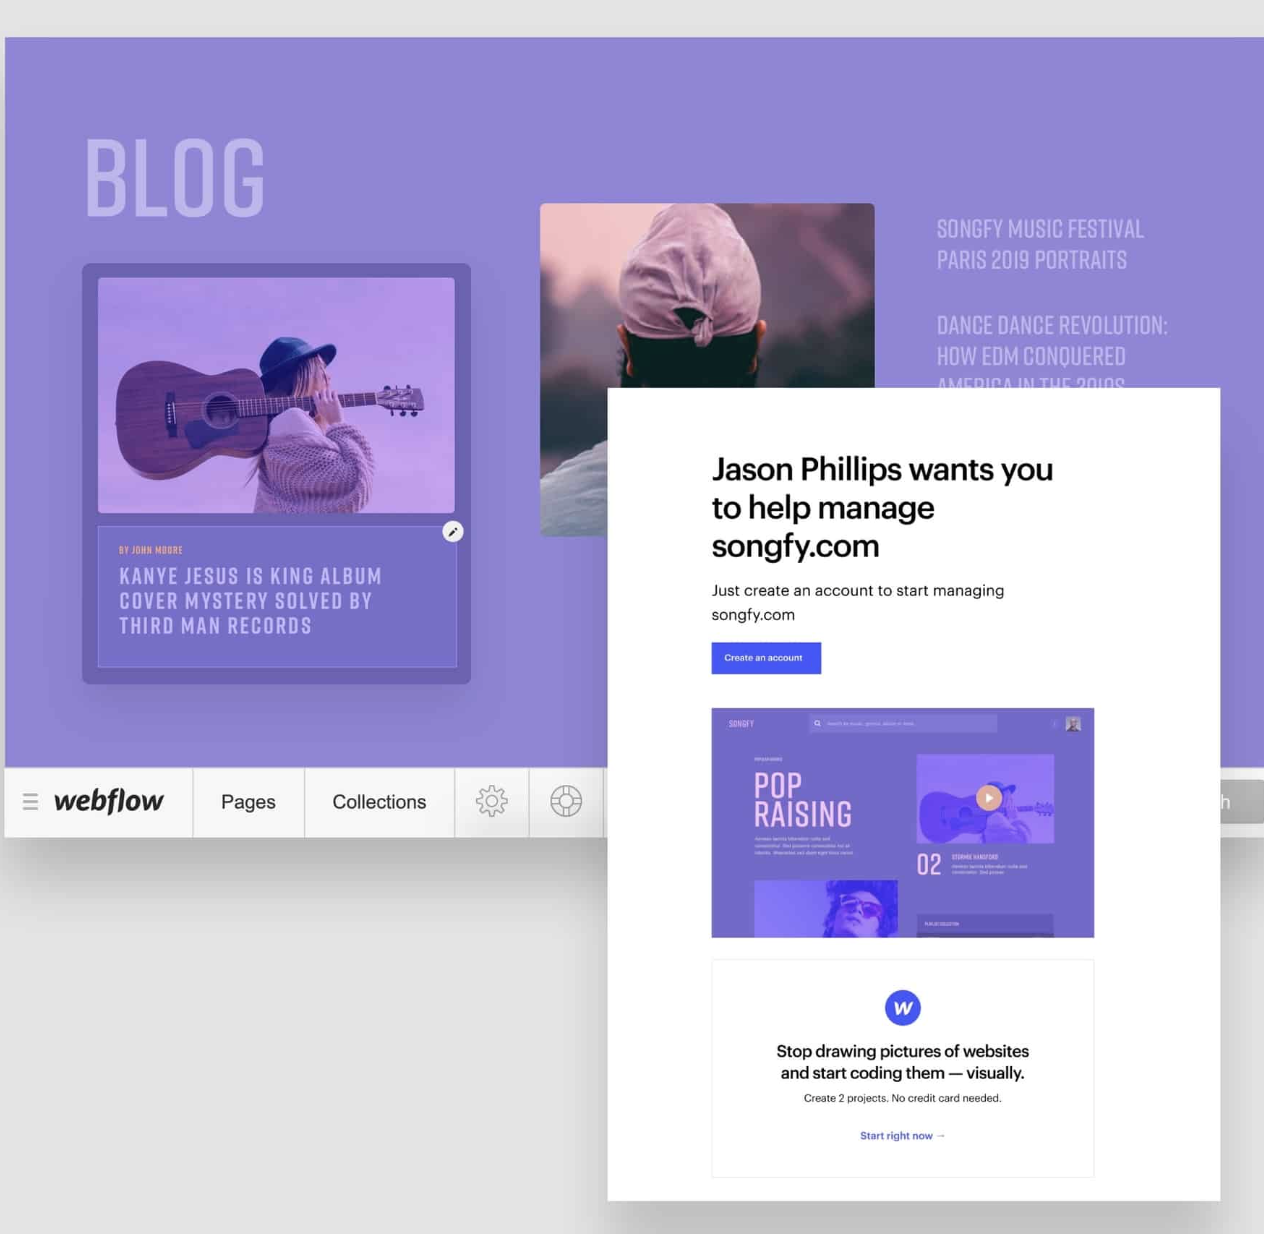 Invite clients or collaborators by giving them access (source: Webflow)